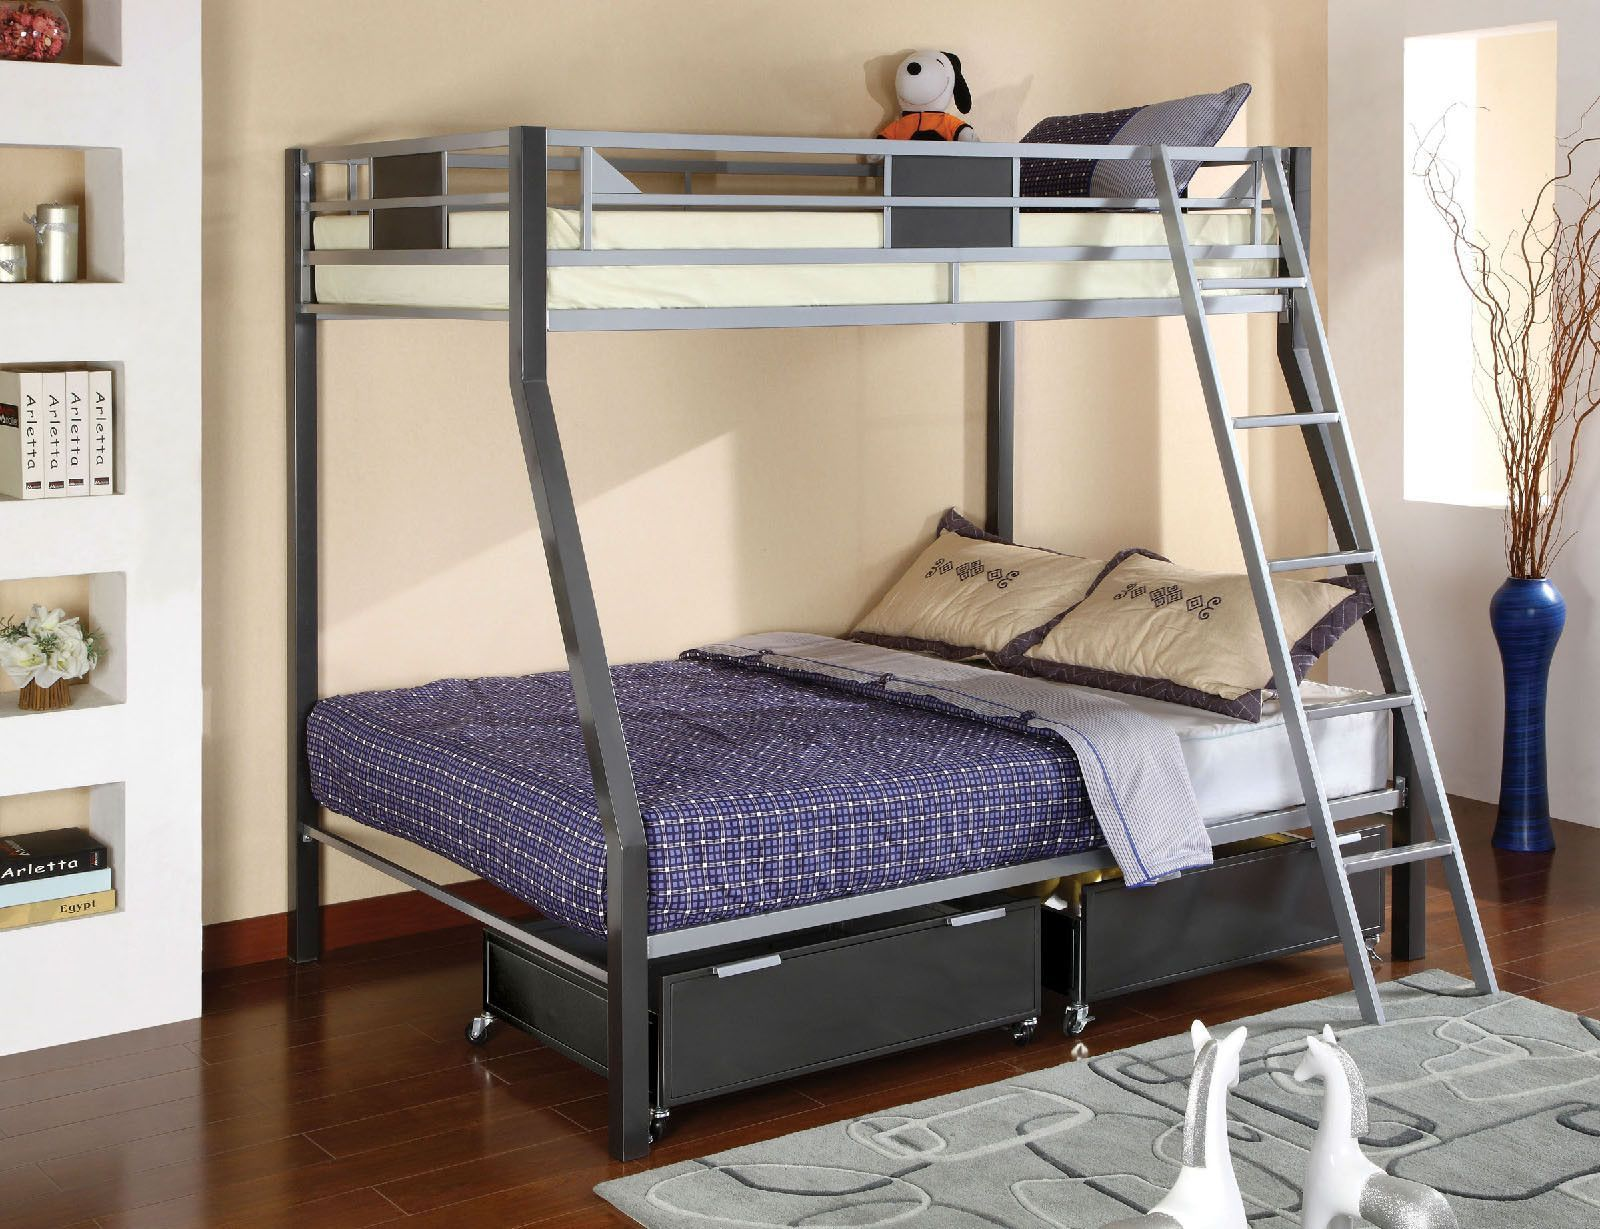 Loft bed with twin underneath  Cletis TwinFull Bunk Bed  Soph u Shea Room  Pinterest  Twin full